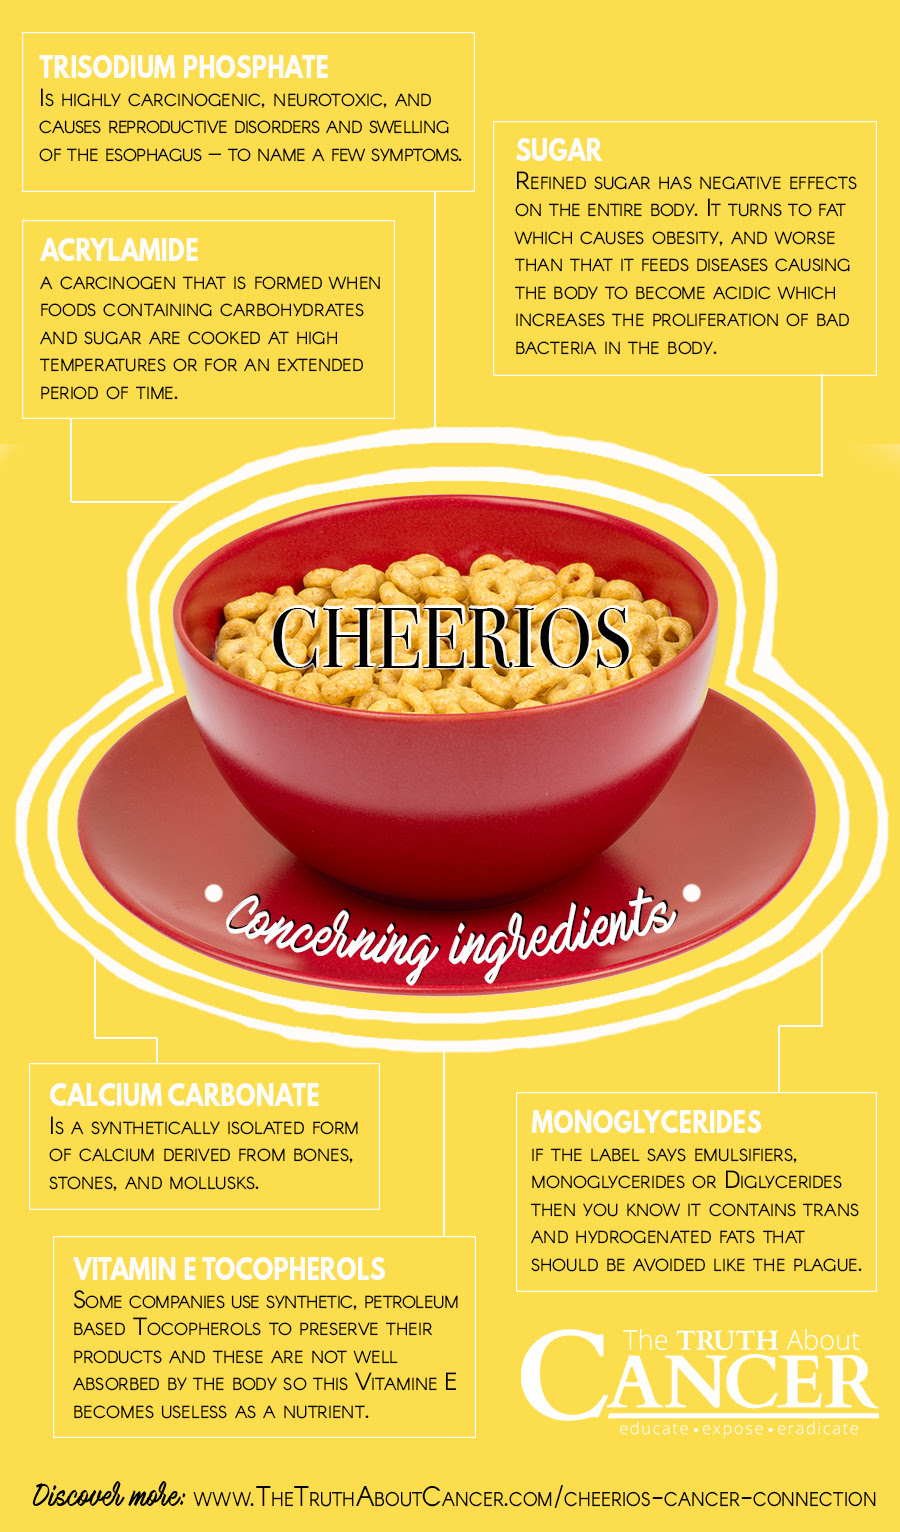 Cheerios Concerning Ingredients